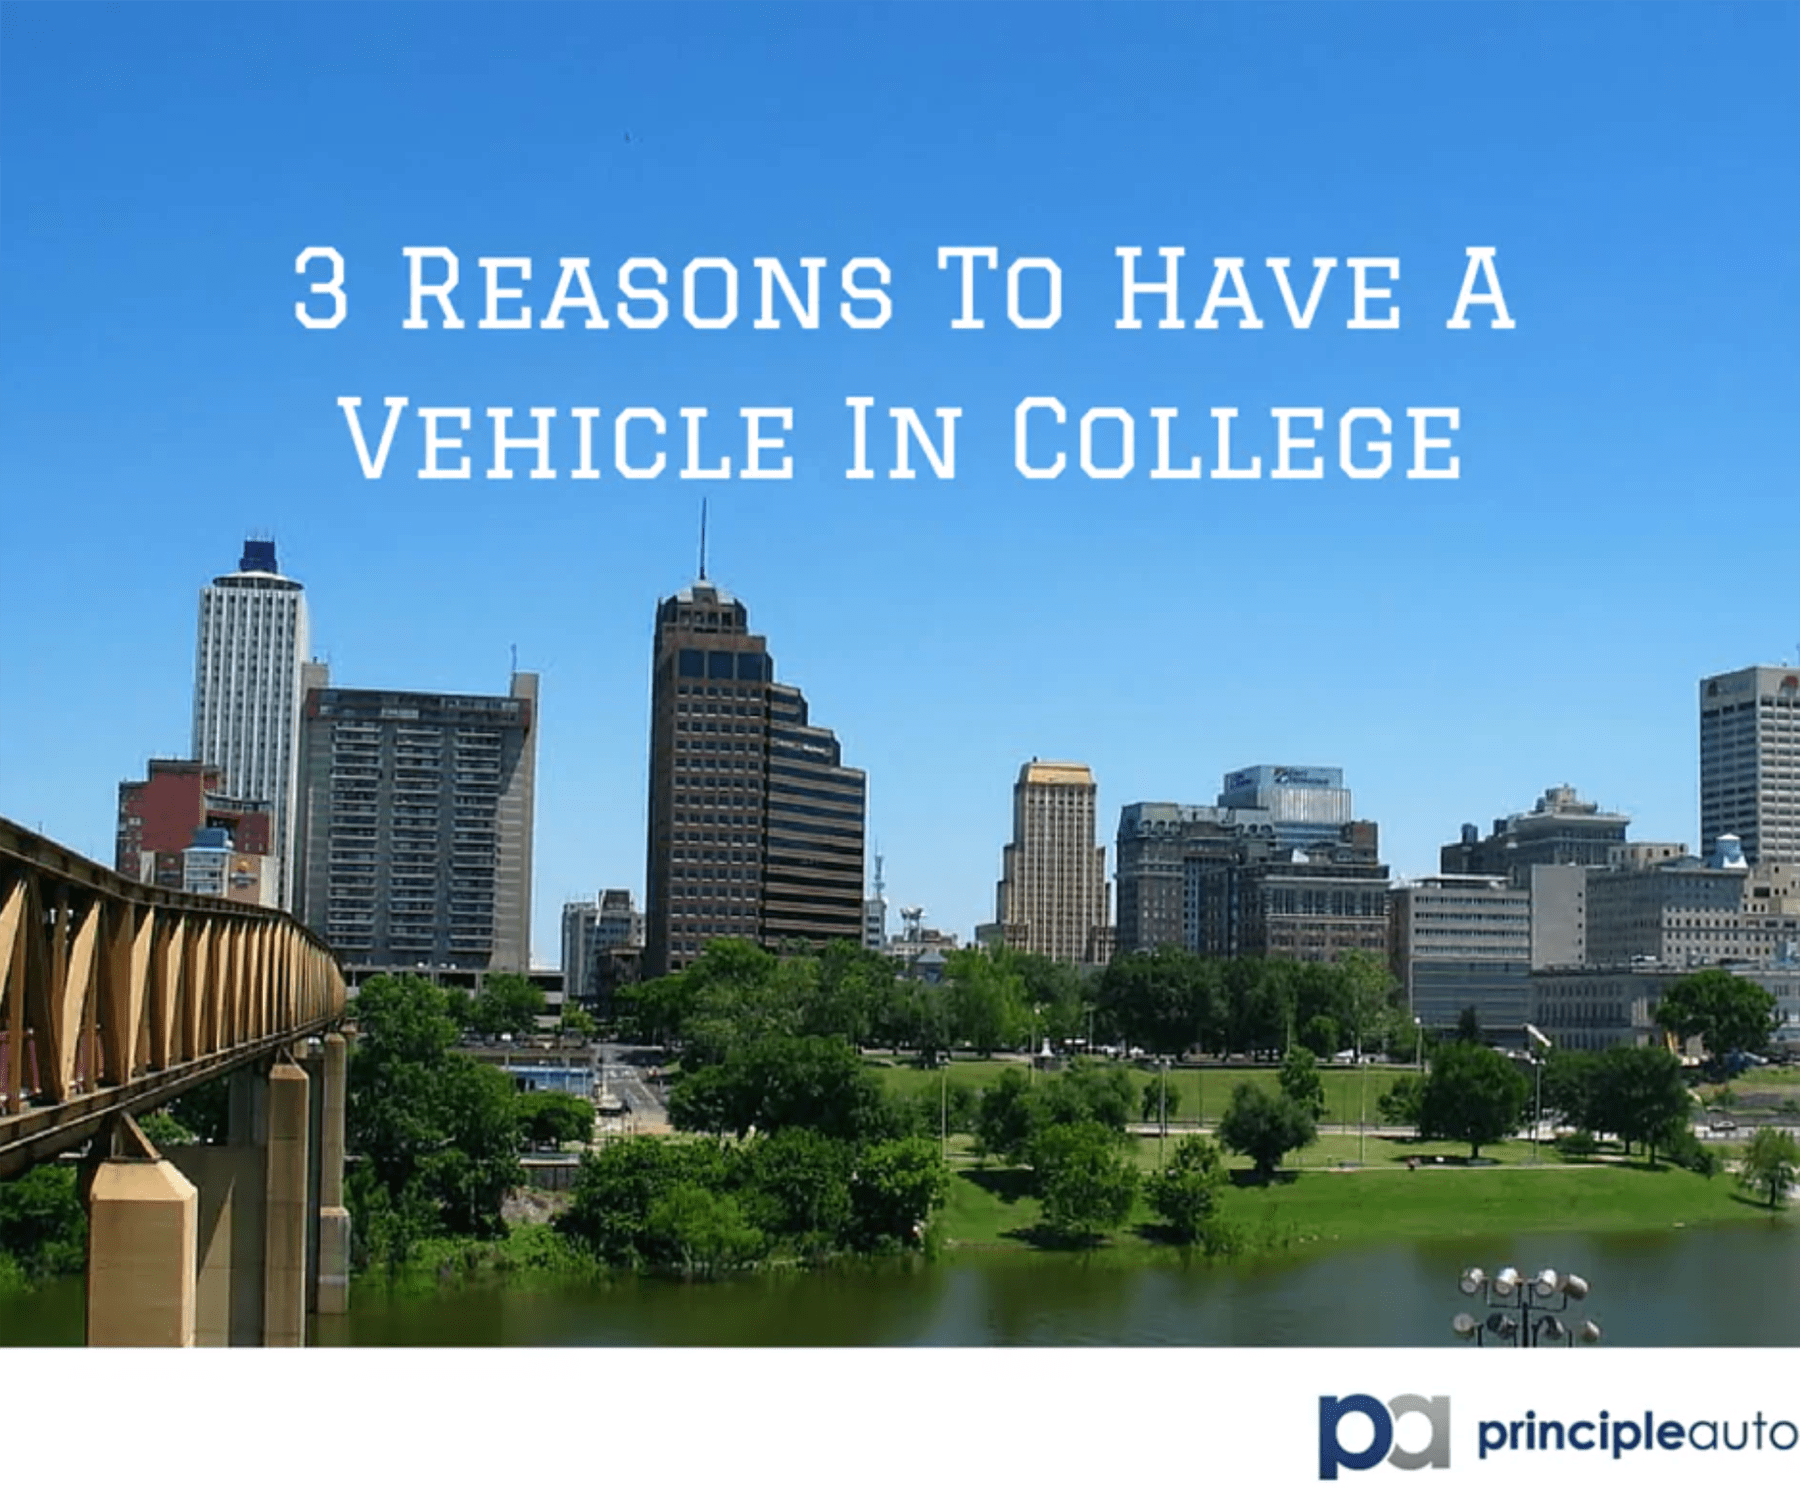 Three reasons to have a vehicle in college